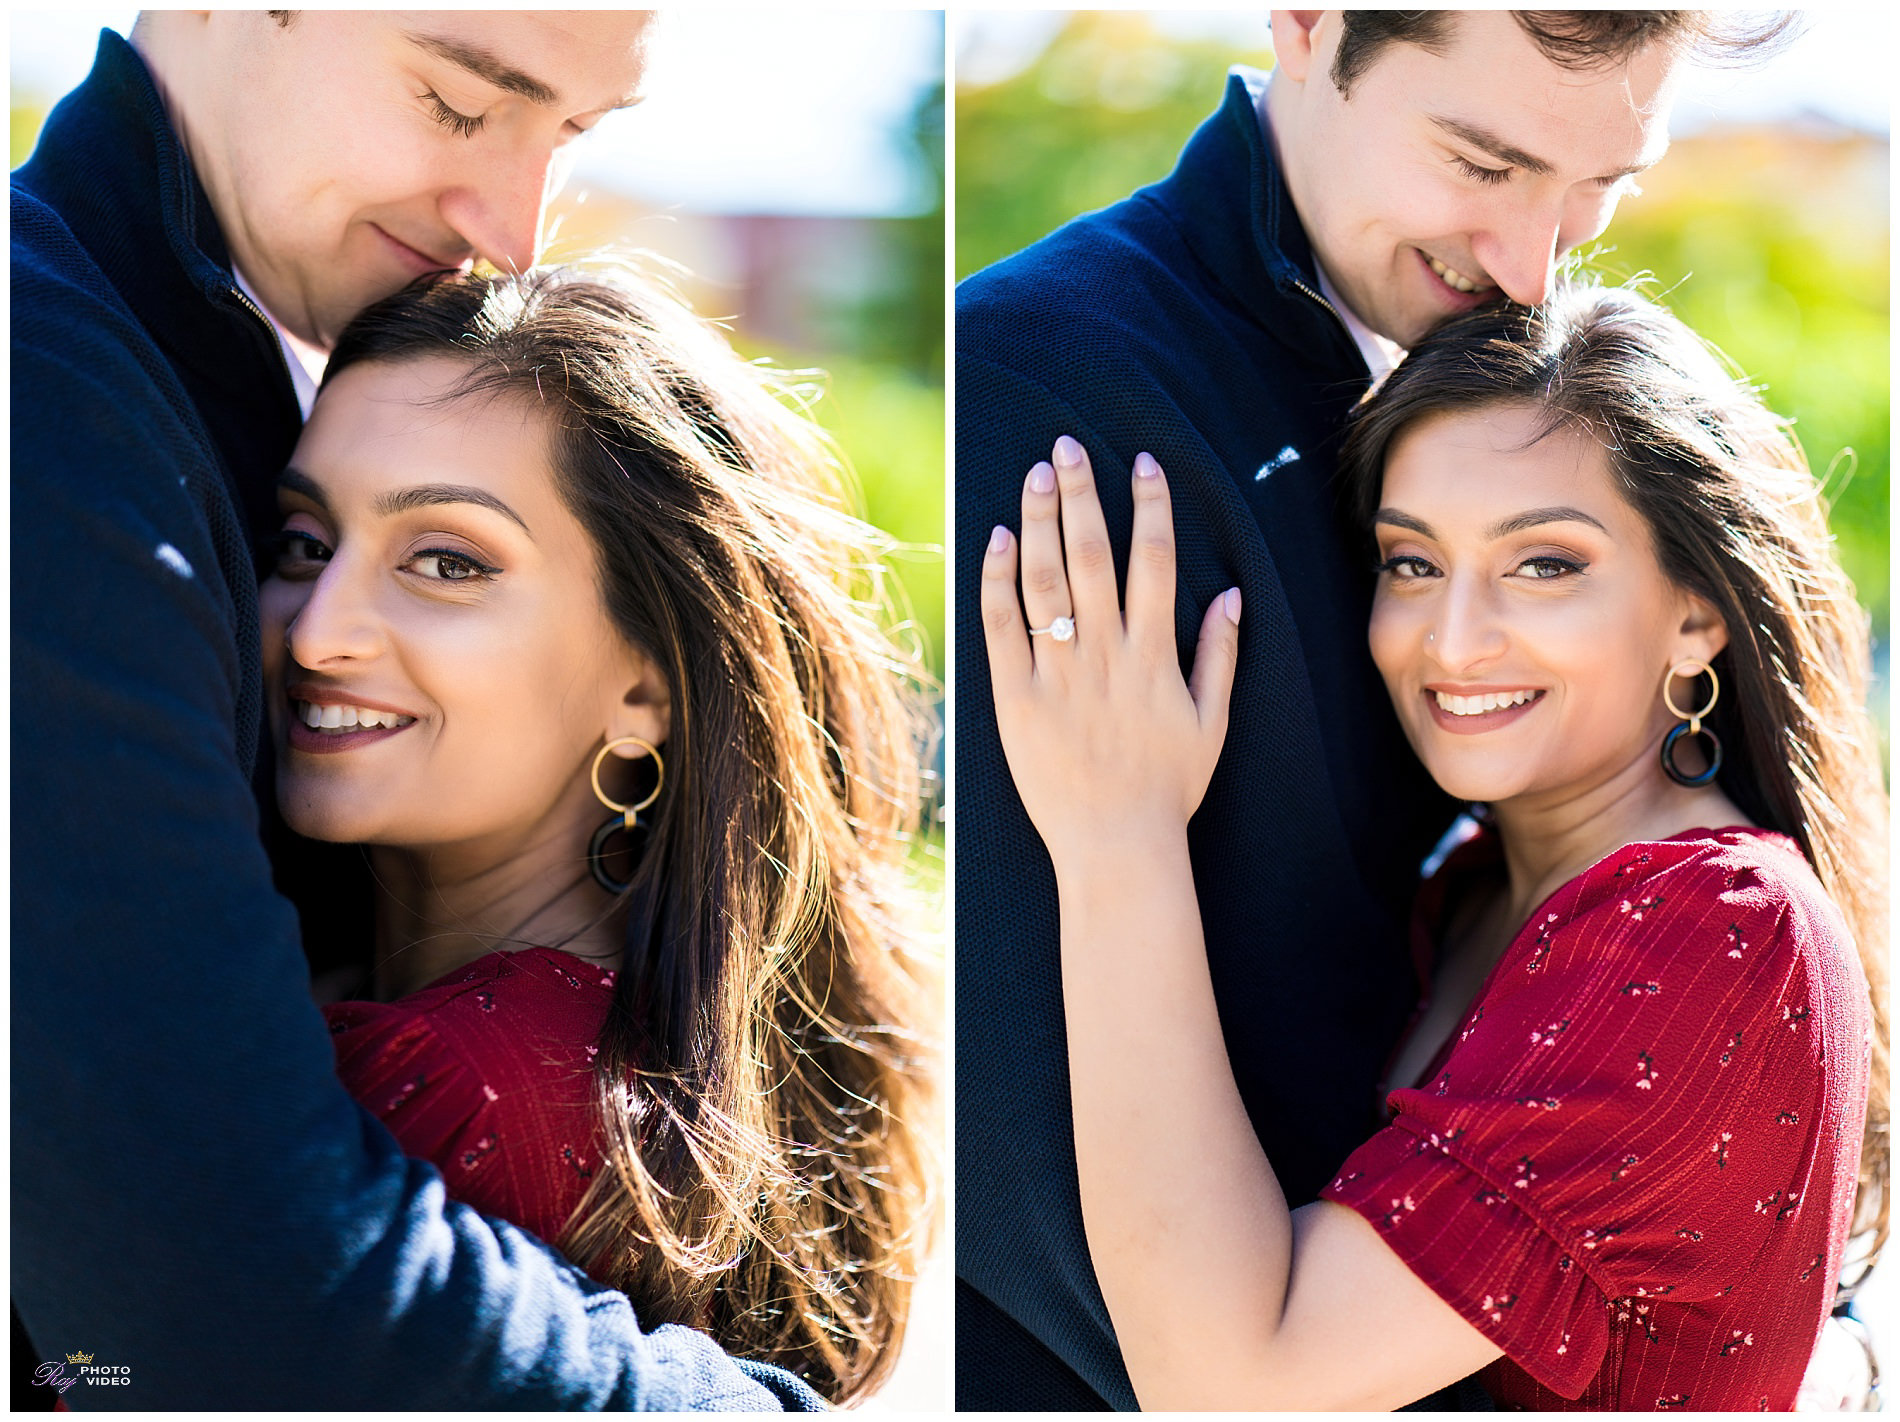 The-College-of-New-Jersey-Engagement-Shoot-Prerna-Kevin18.jpg